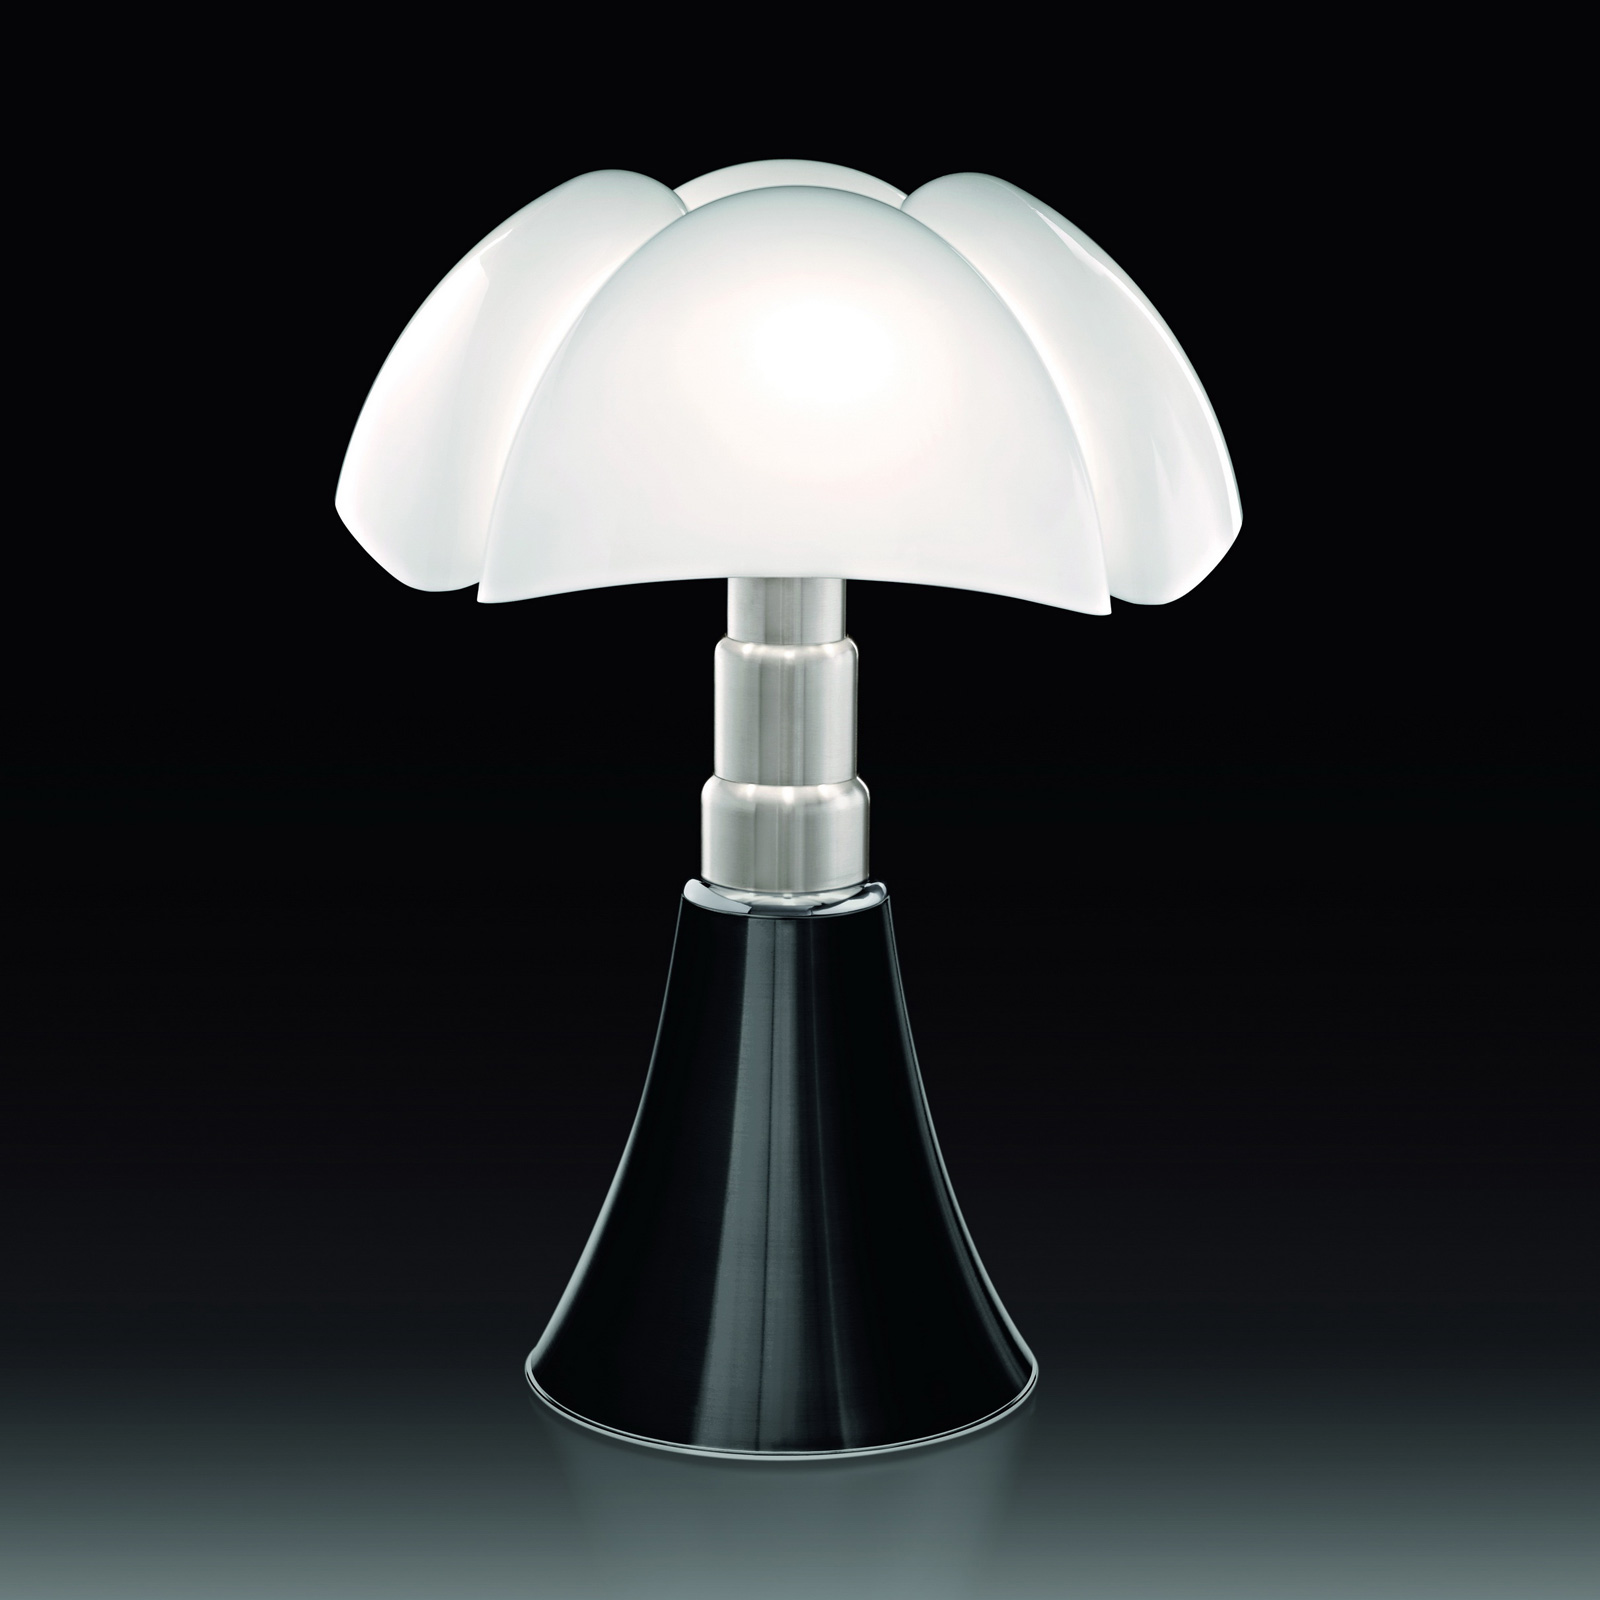 timeless design pipistrello table lamp by gae aulenti for. Black Bedroom Furniture Sets. Home Design Ideas